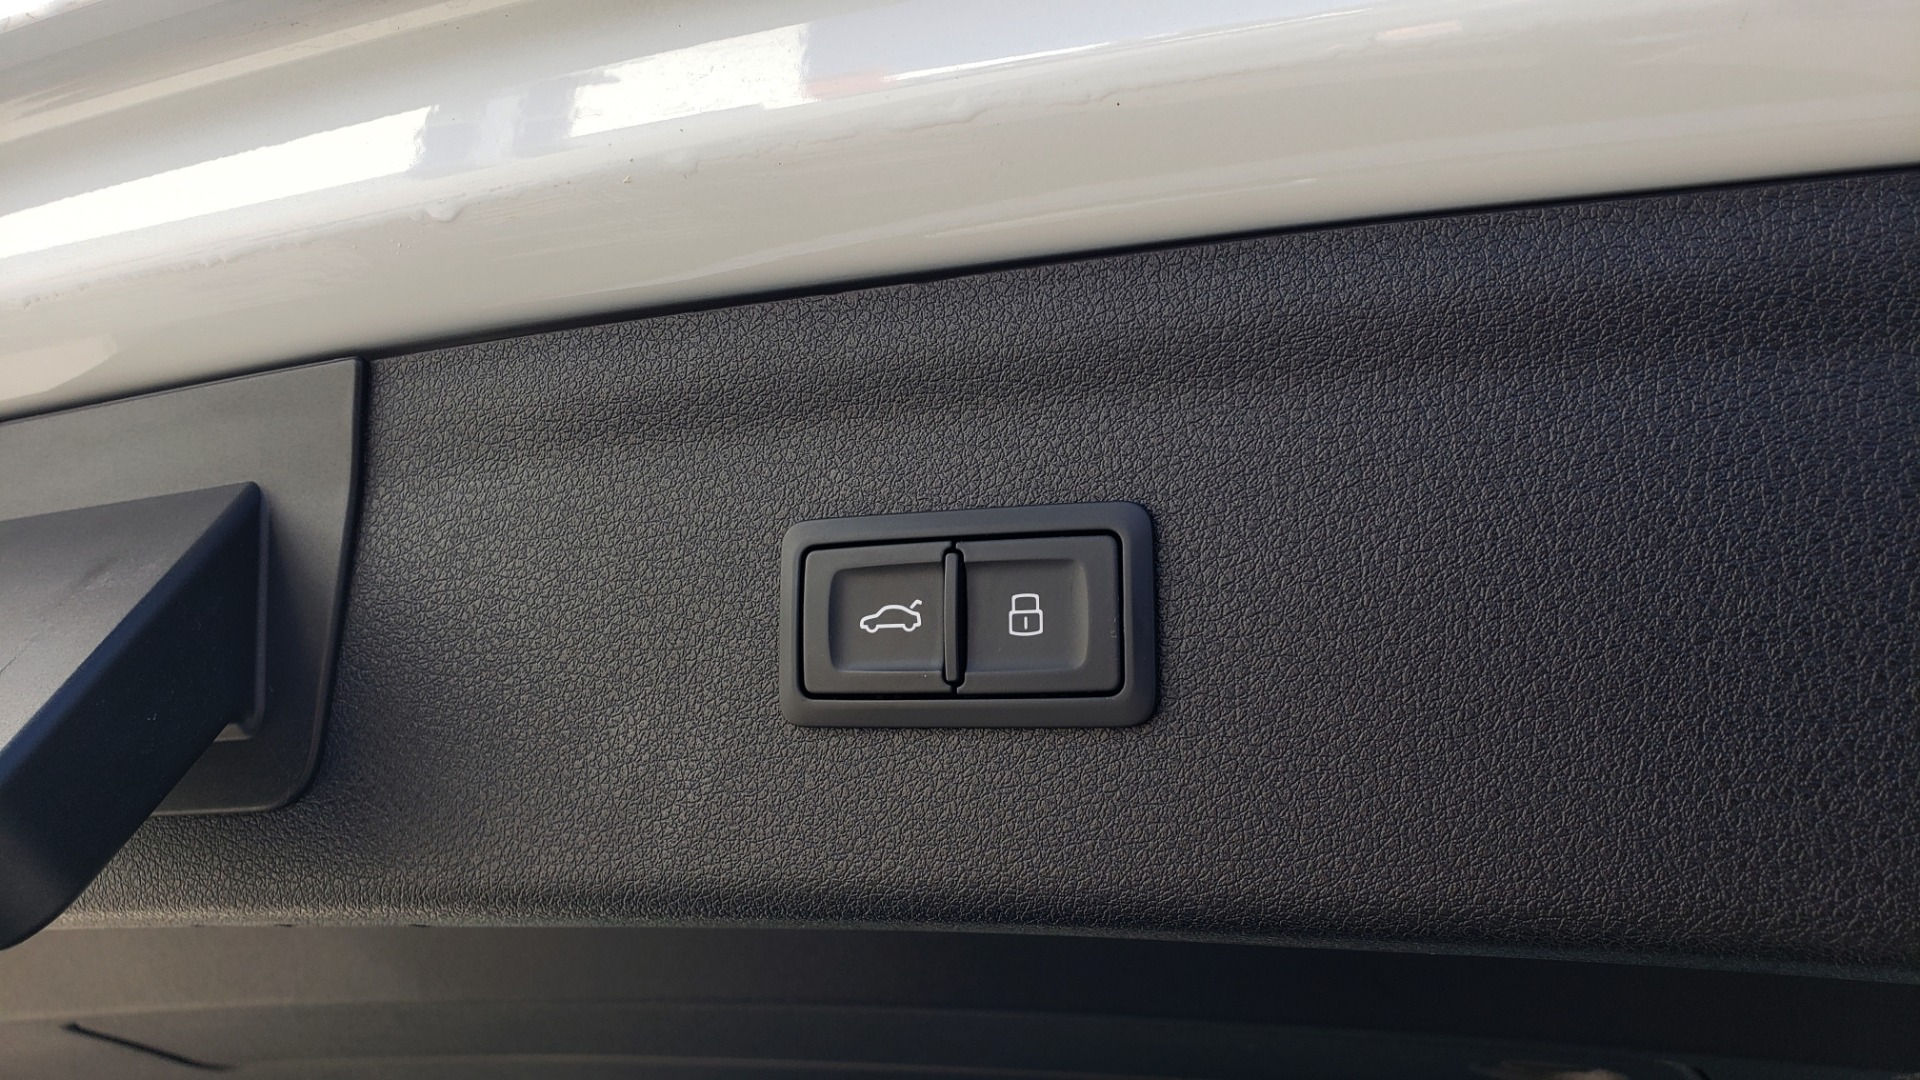 Used 2018 Audi Q3 PREMIUM PLUS 2.0T / SPORT PKG / NAV / BOSE / SUNROOF / REARVIEW for sale Sold at Formula Imports in Charlotte NC 28227 18